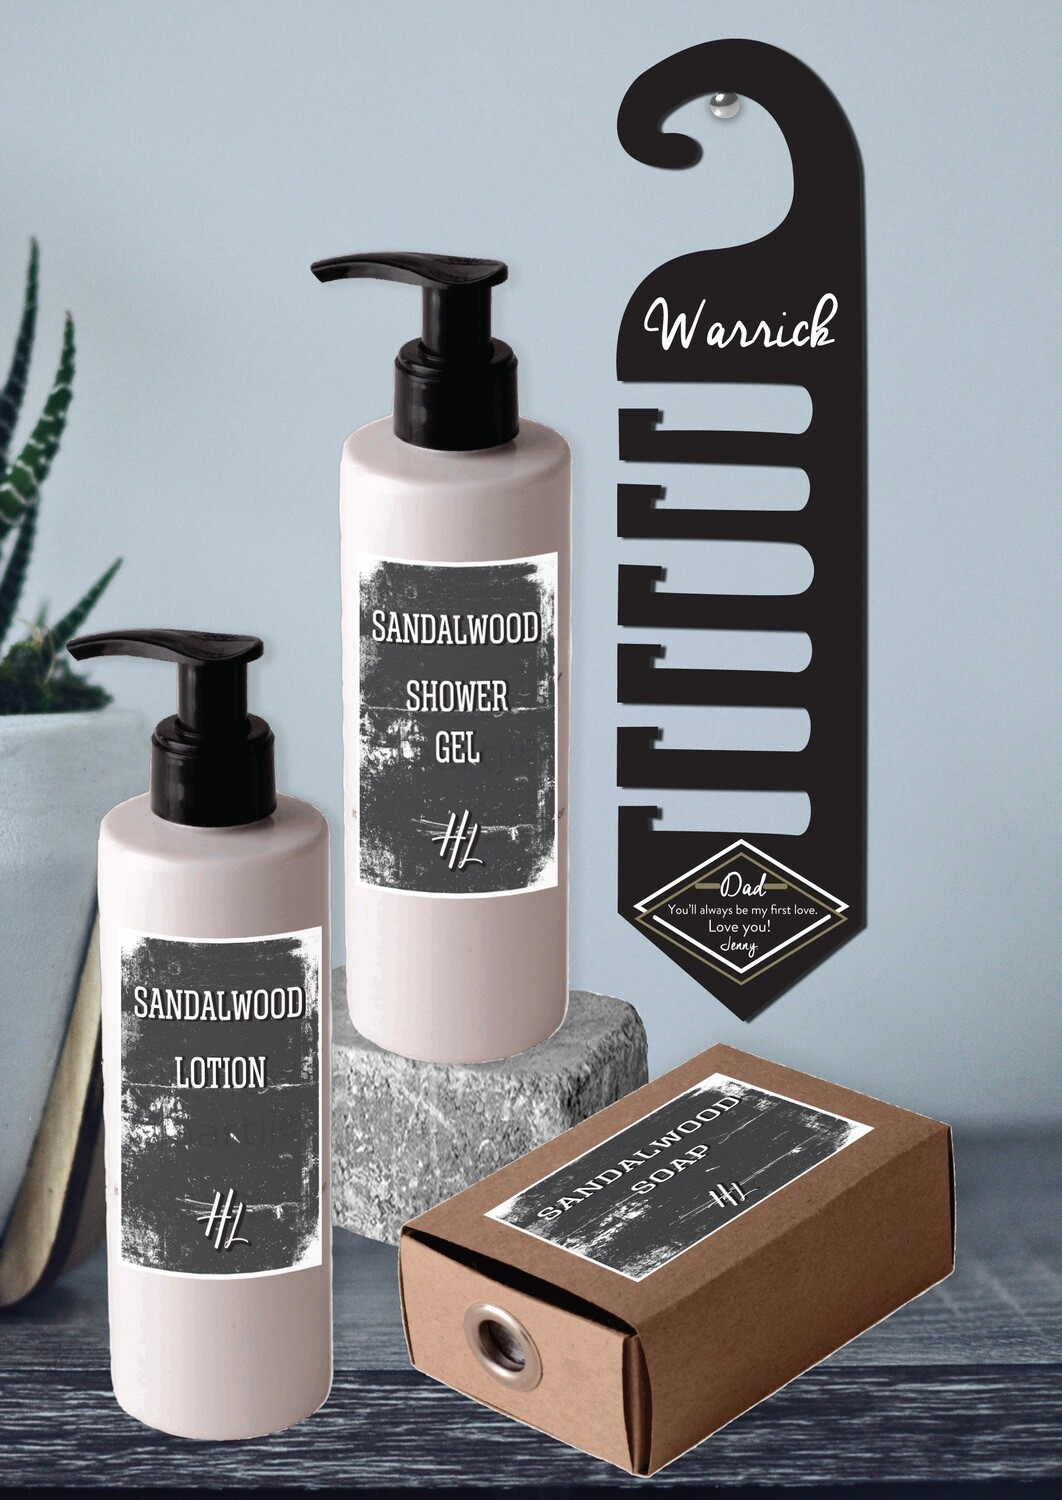 Personalized Tie Hanger & Body Care